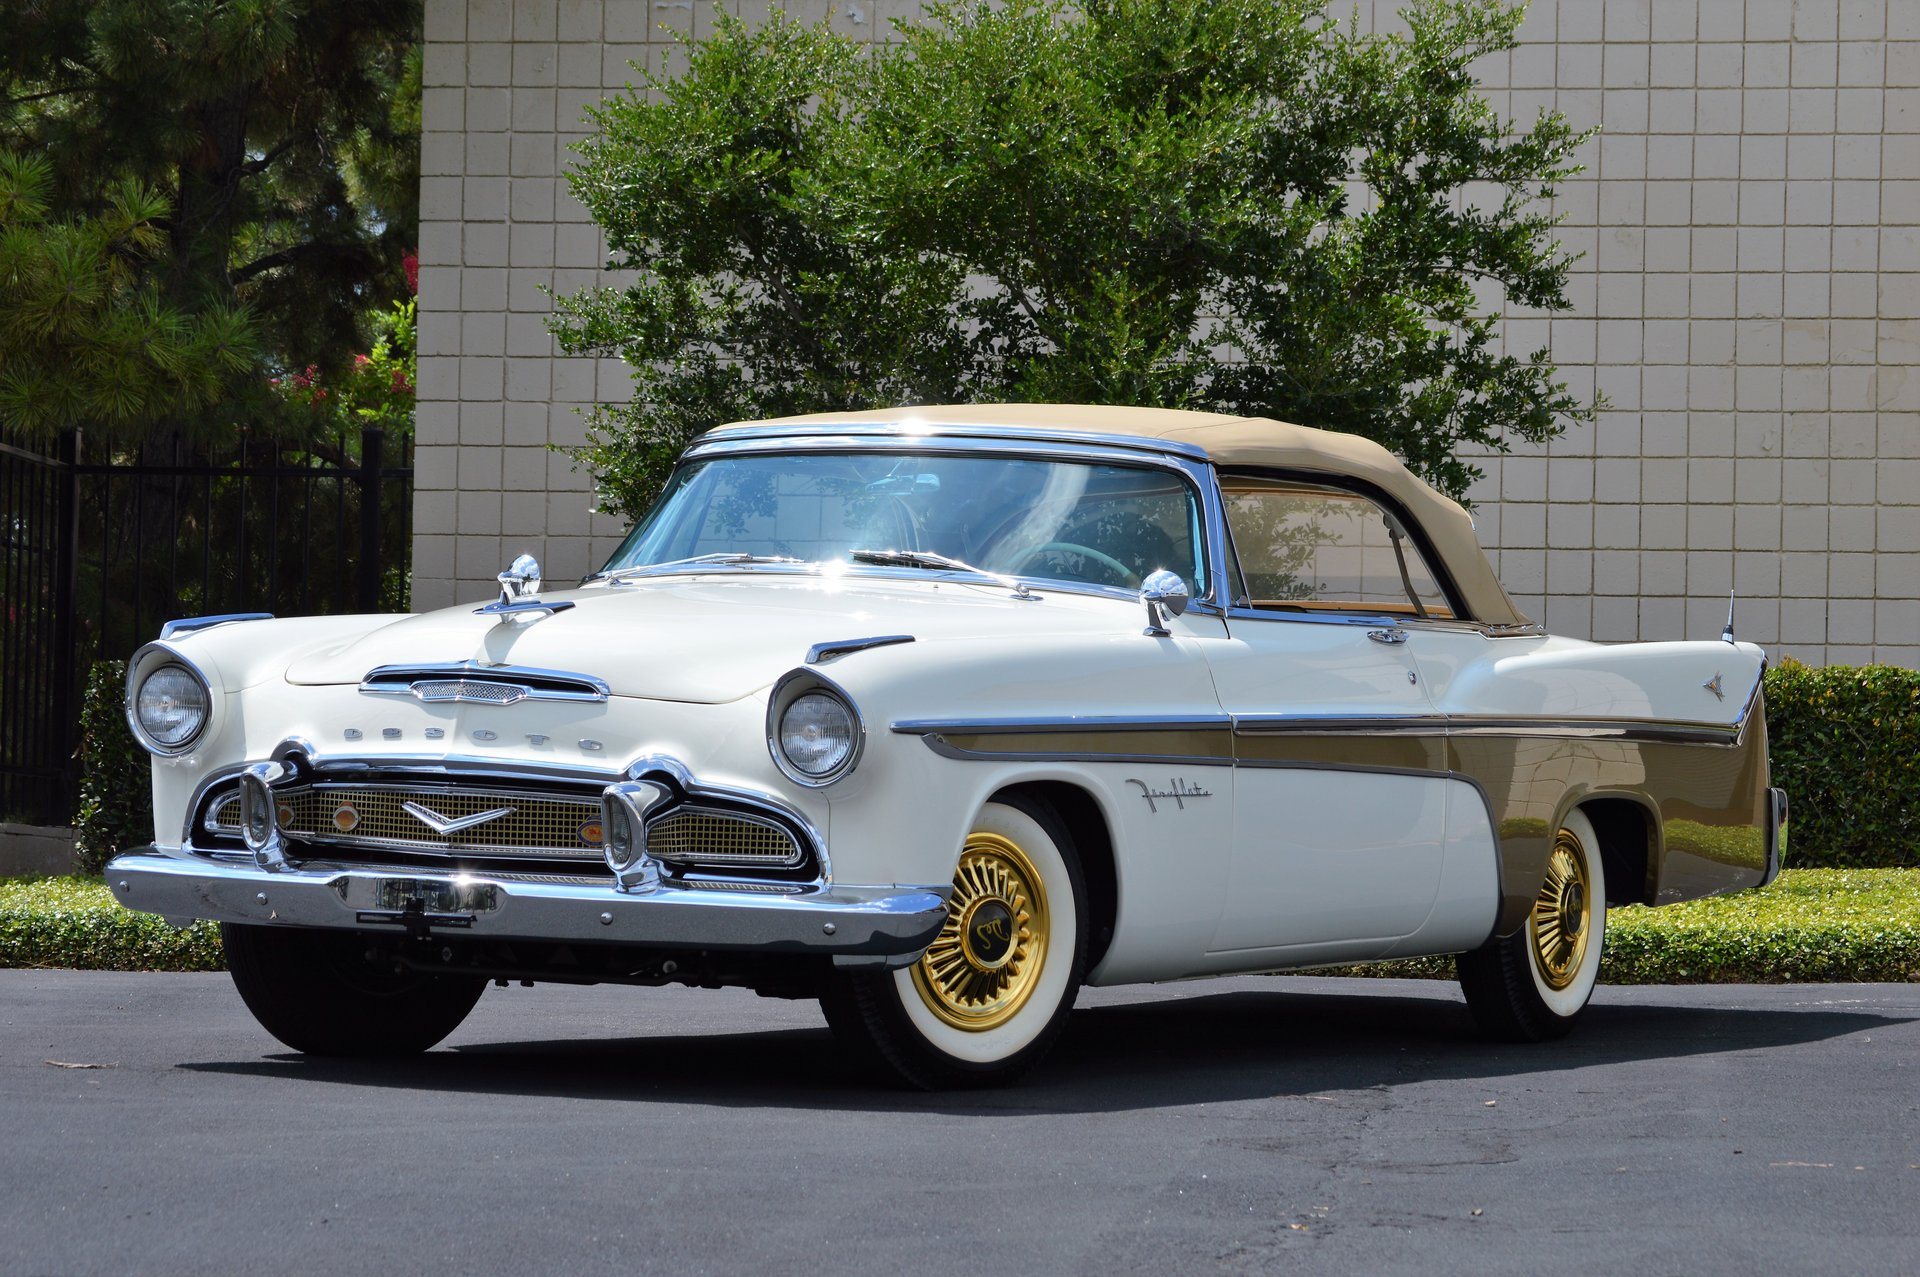 1956 desoto fireflite indy 500 pace car